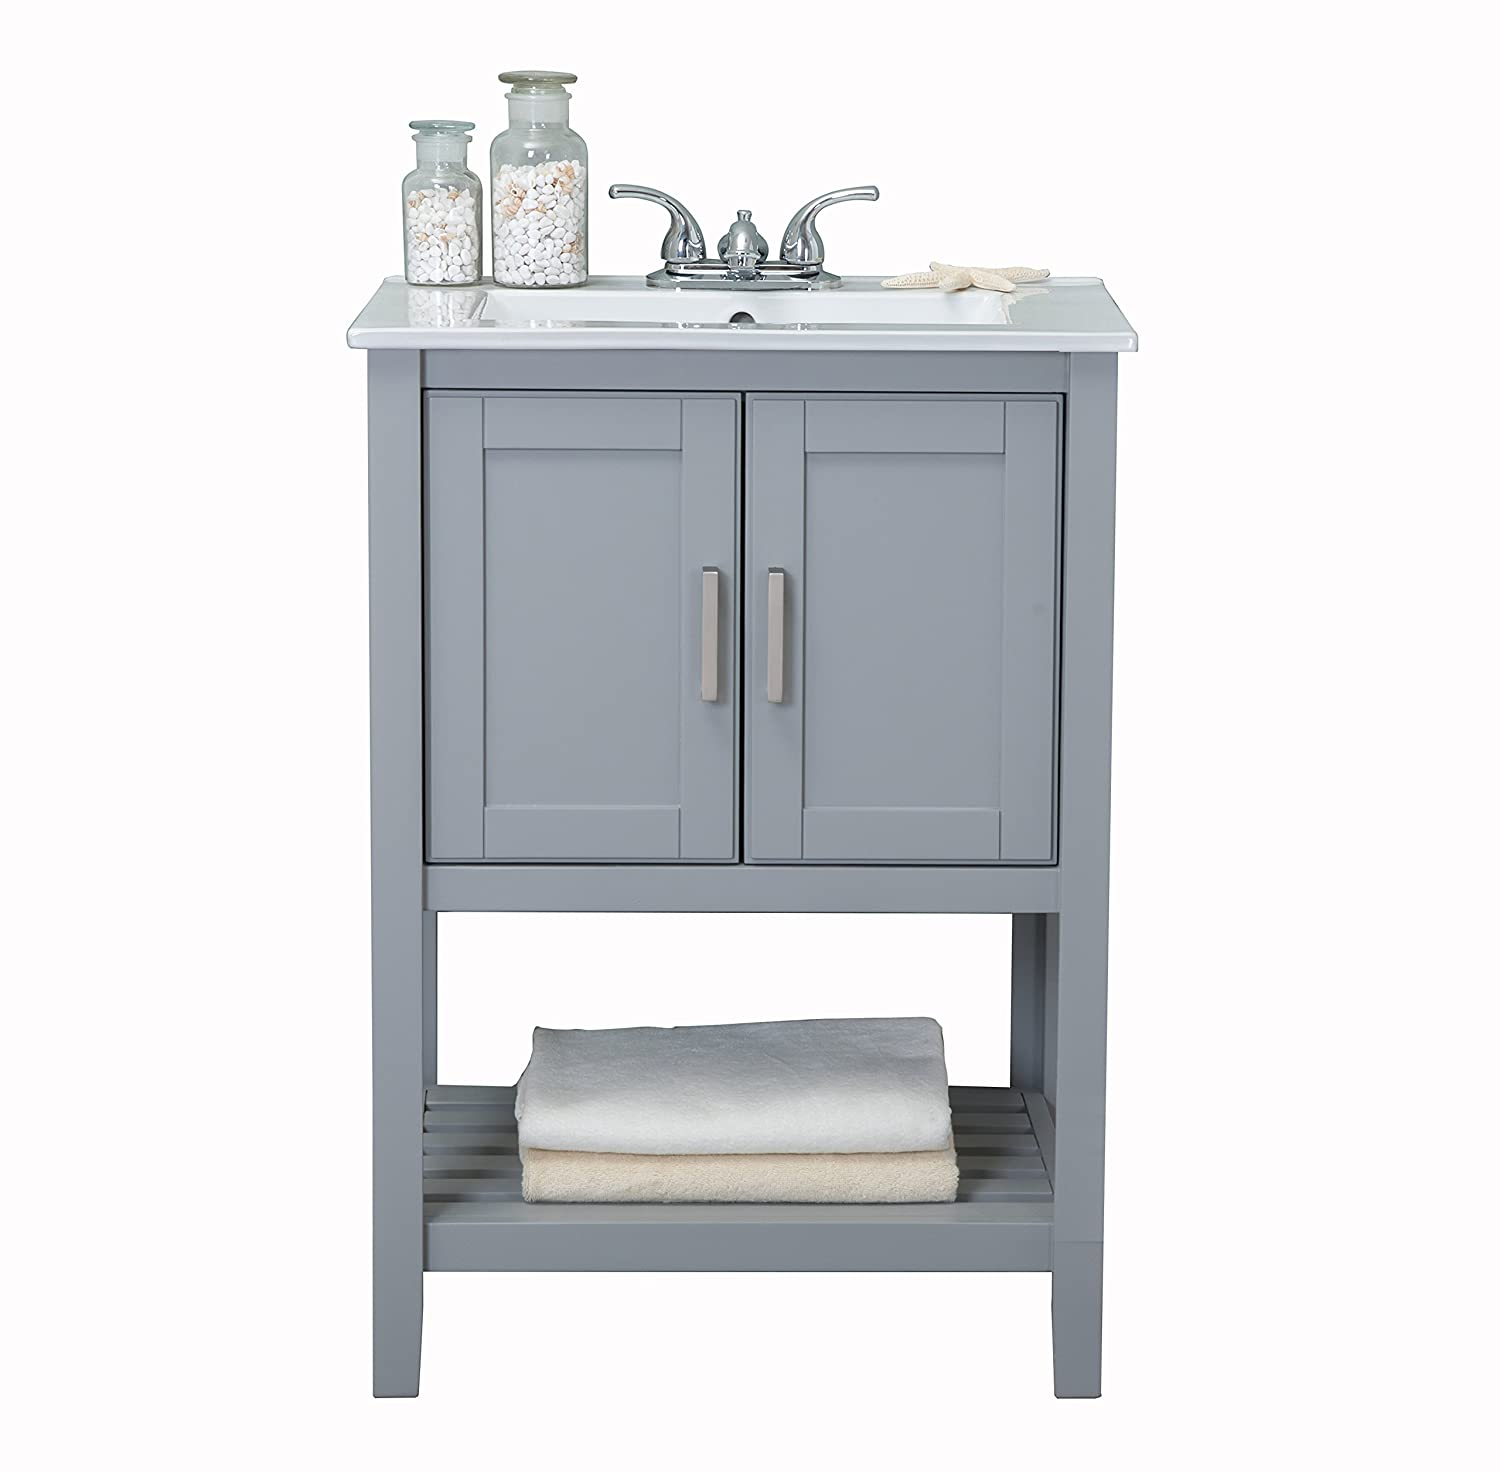 Legion Furniture Wlf6020 G Bathroom Vanity 24 X 18 3 X 33 7